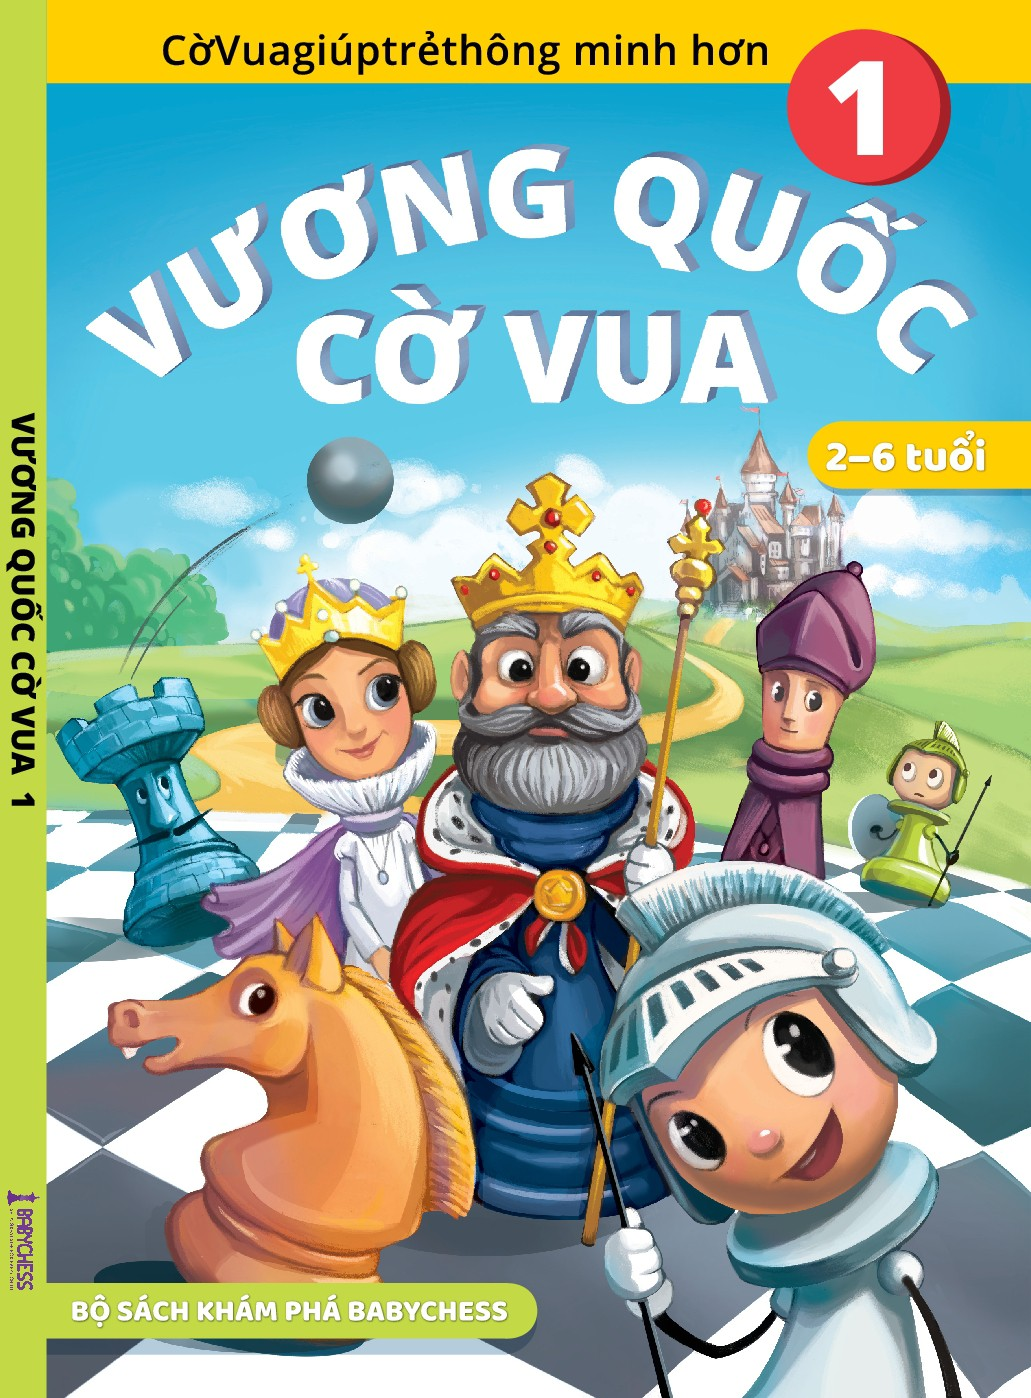 Creative Chess book cover for 2 - 6 years old kids